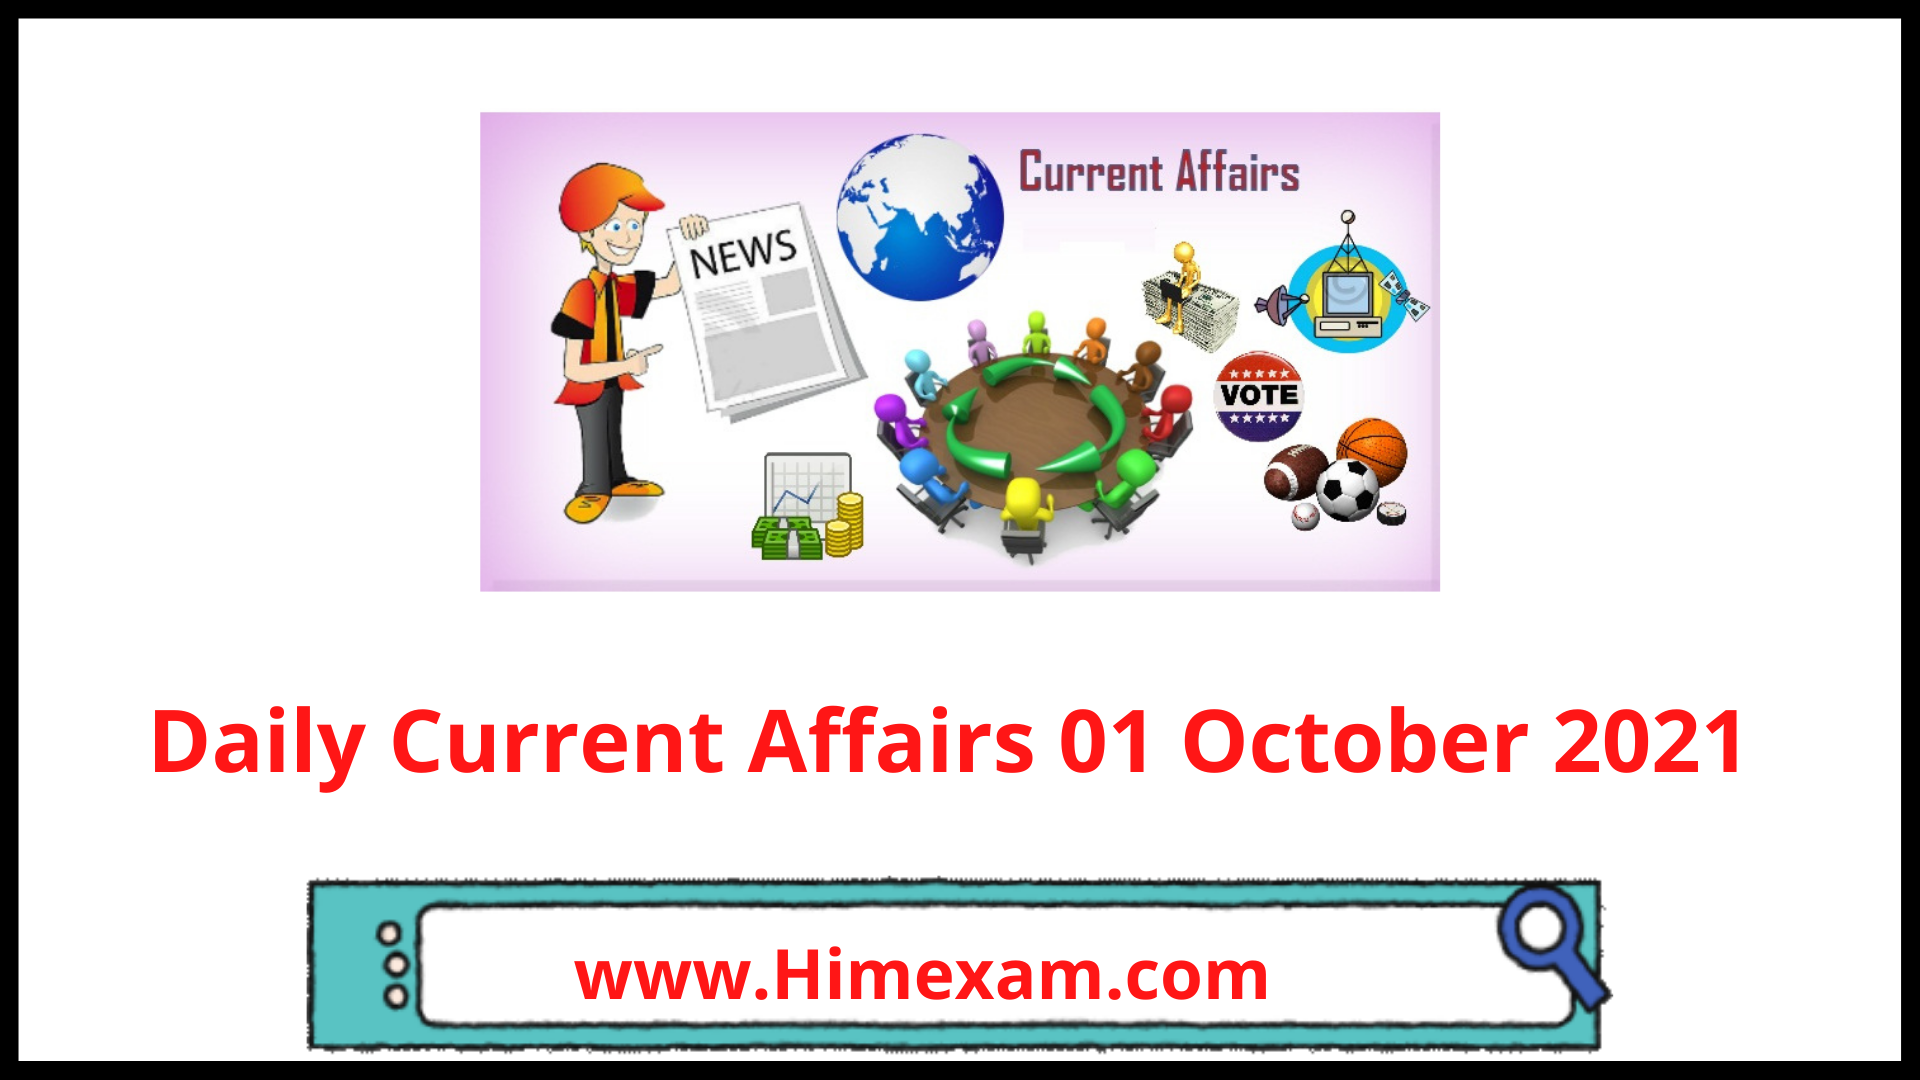 Daily Current Affairs 01 October 2021